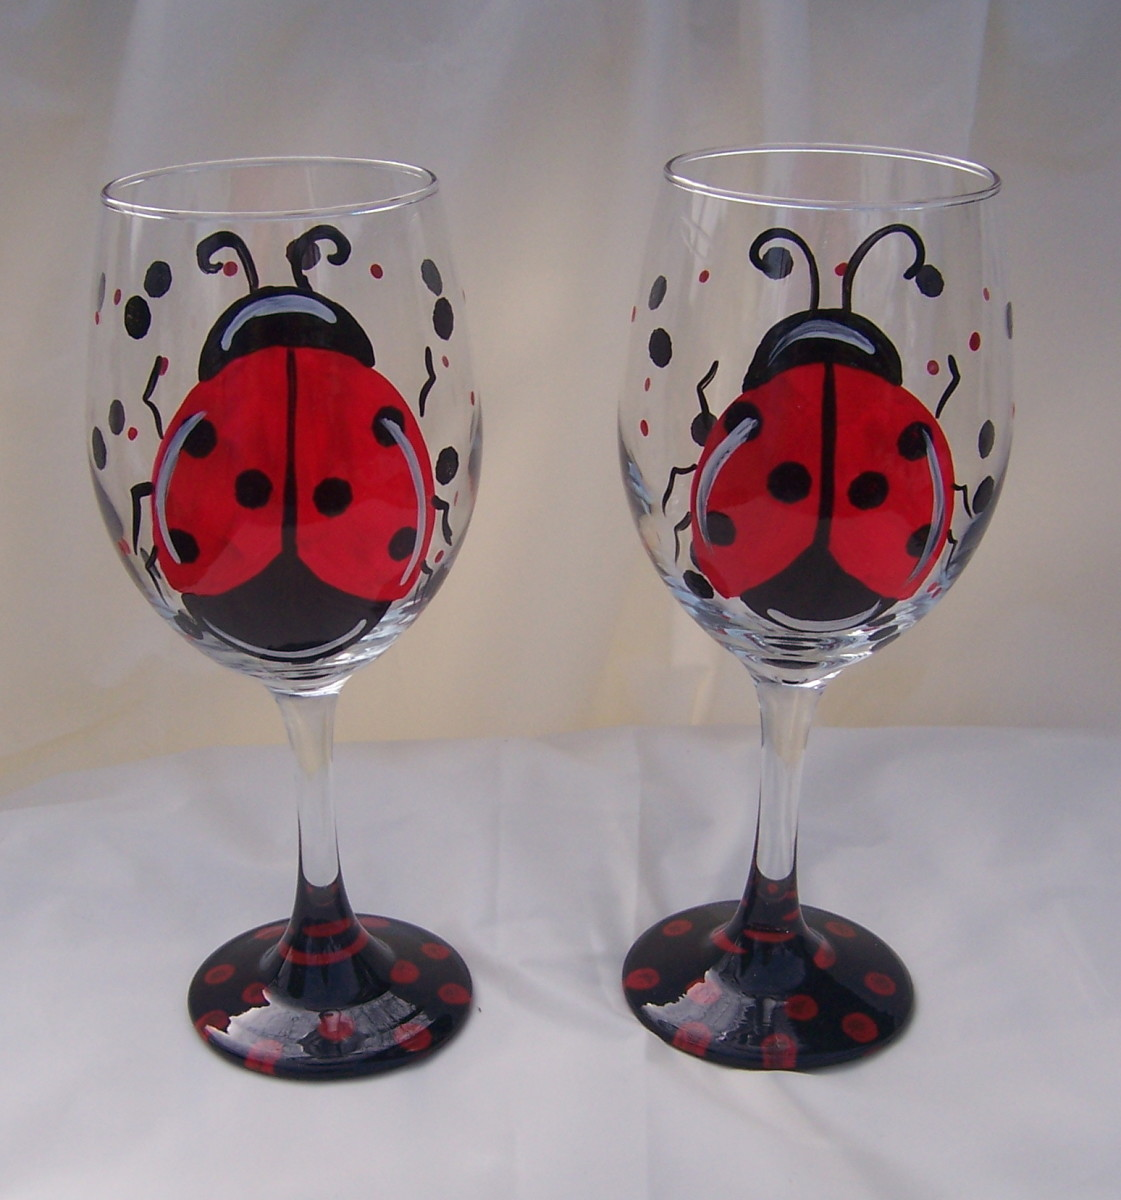 Just too cute ladybug wine glasses